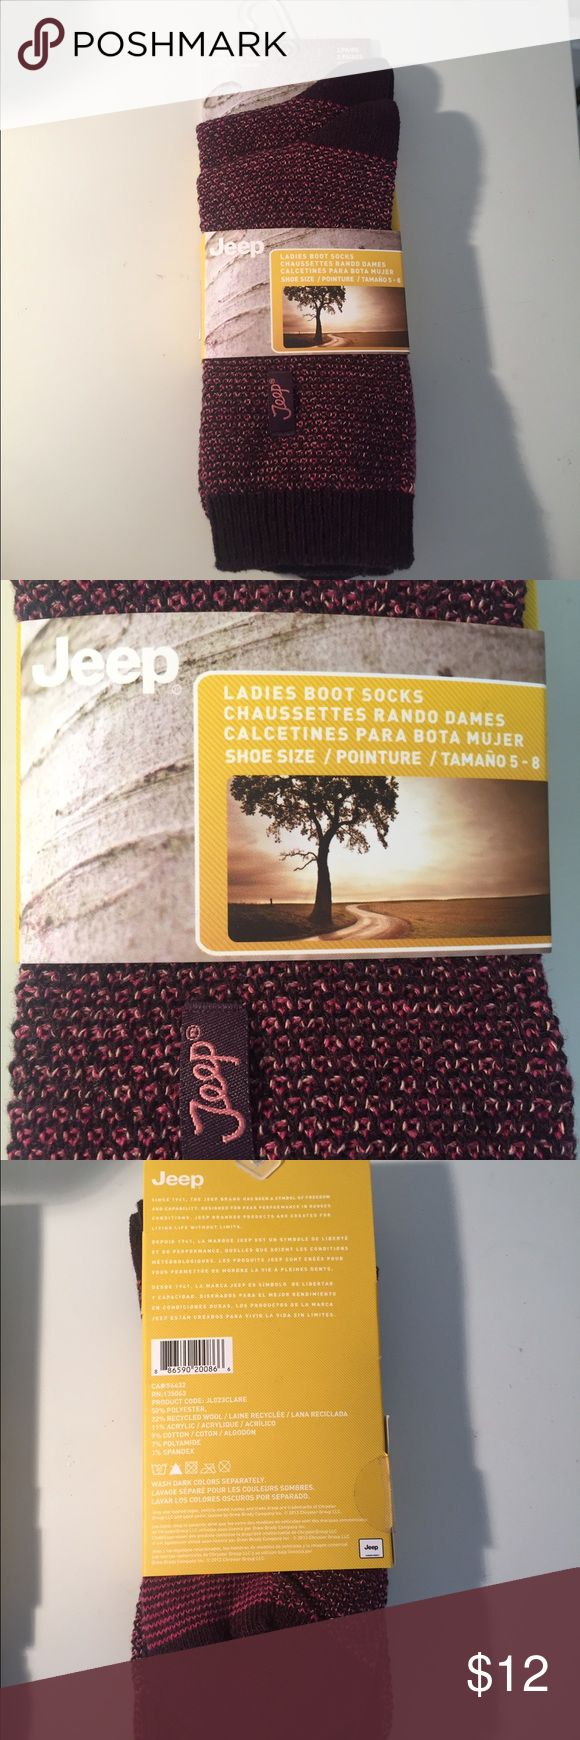 JEEP Boot Socks NEW 2 Pack Raspberry Sz 5-8 JEEP Boot Socks NEW 2 Pack Raspberry Boot Socks with Jeep Logo Sz 5-8. Pretty Socks JEEP Accessories Hosiery & Socks